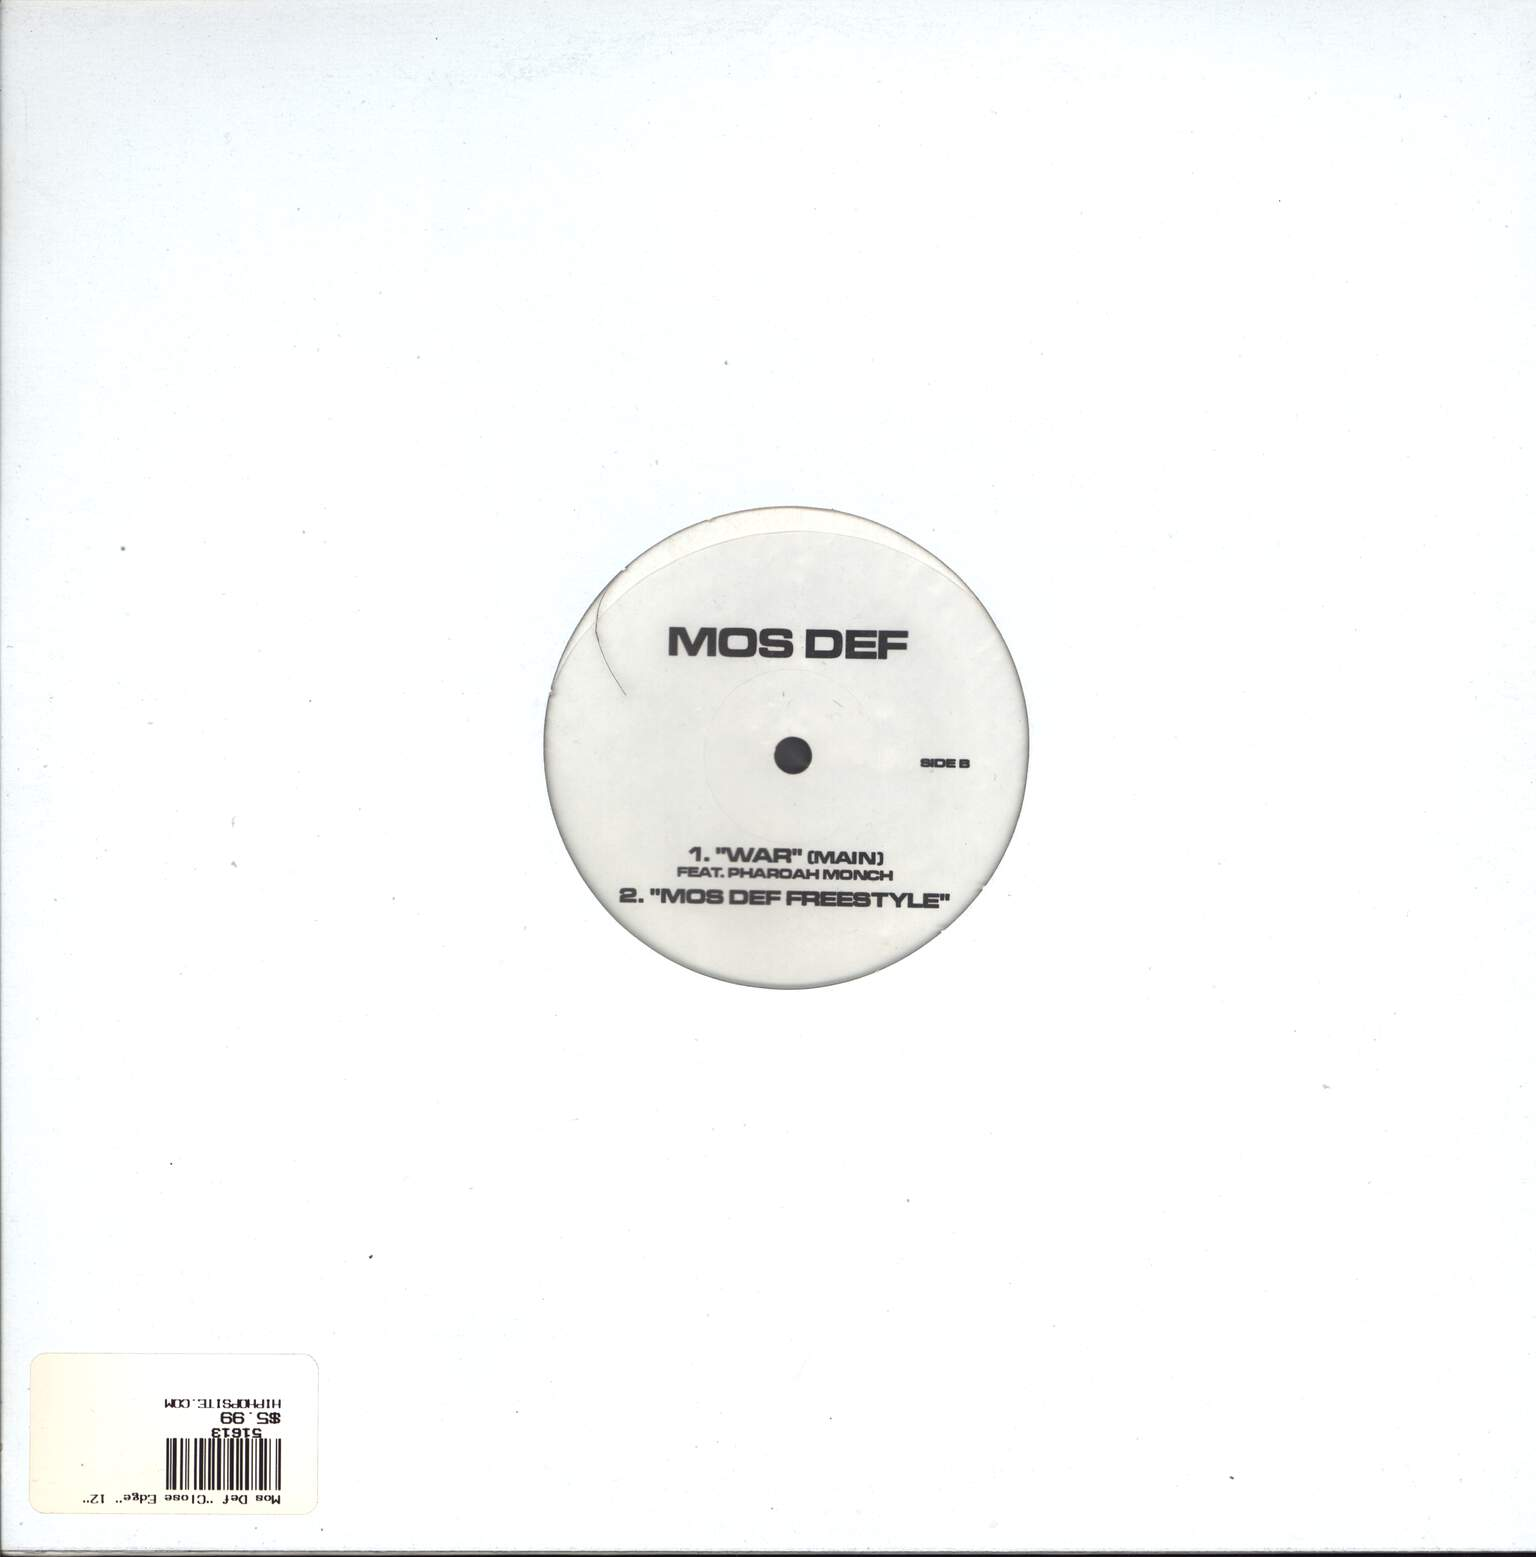 "Mos Def: Close Edge / War, 12"" Maxi Single (Vinyl)"